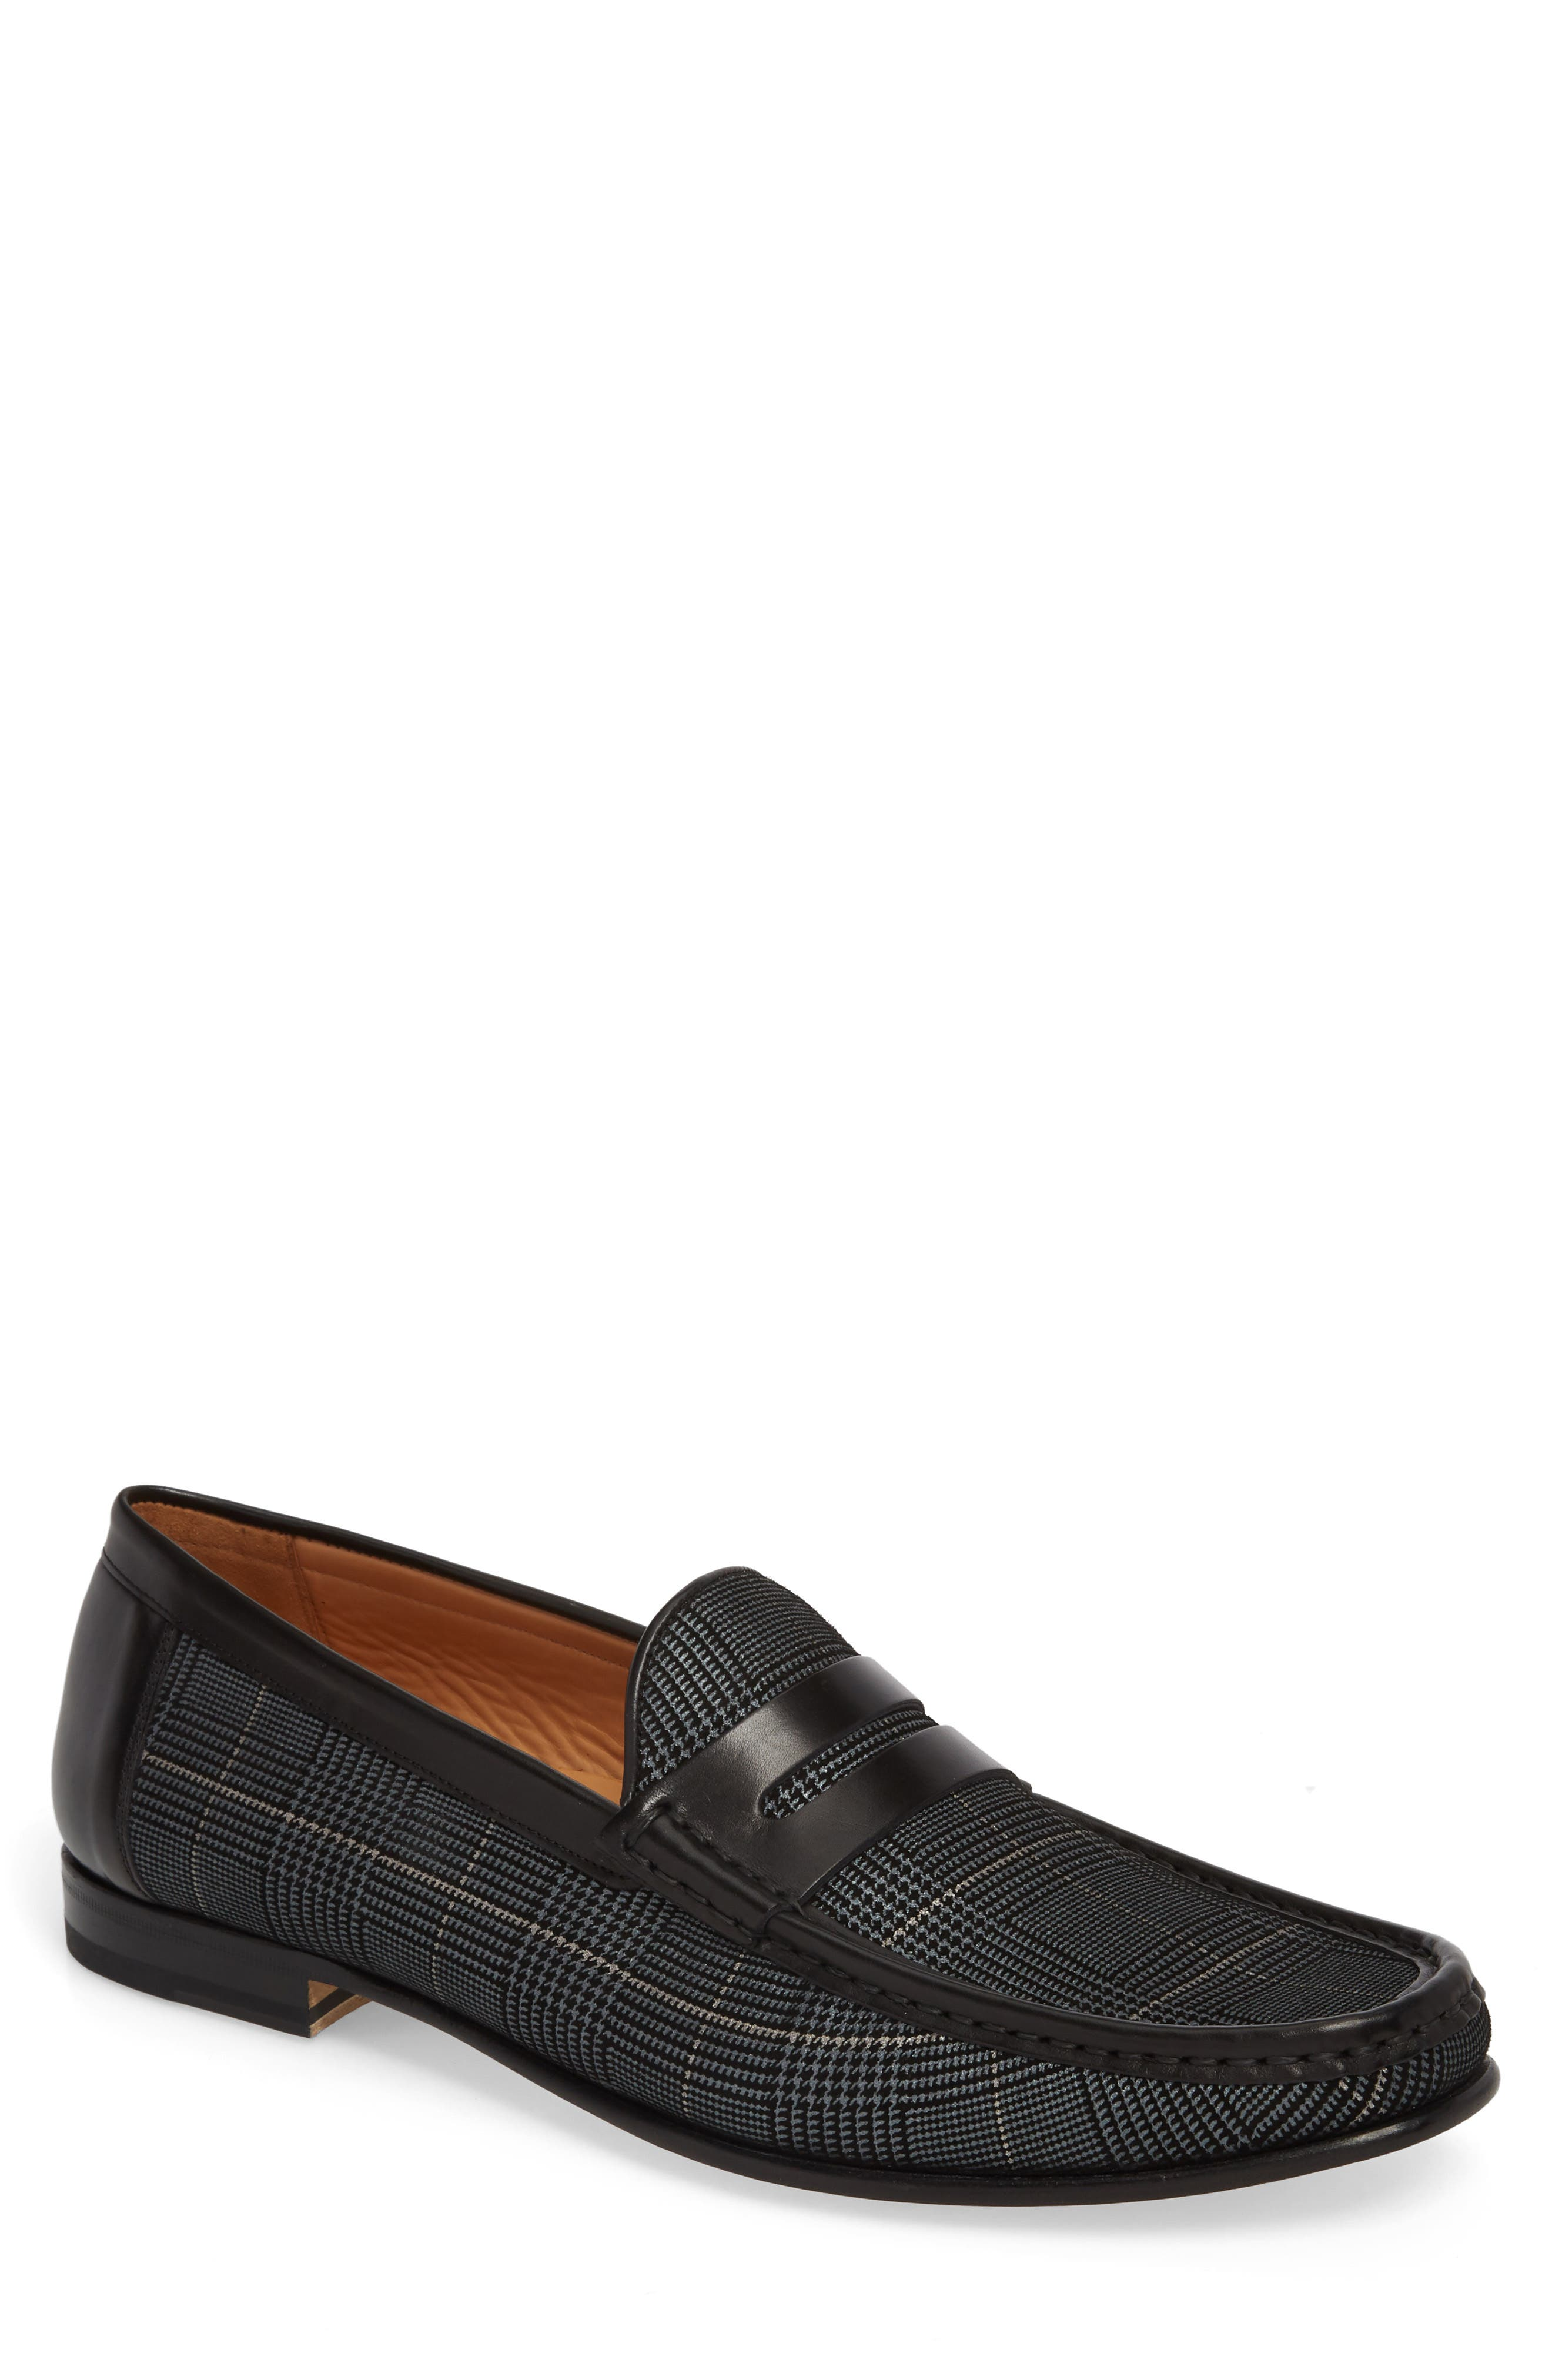 Lares I Houndstooth Penny Loafer,                         Main,                         color, Black Suede/ Leather